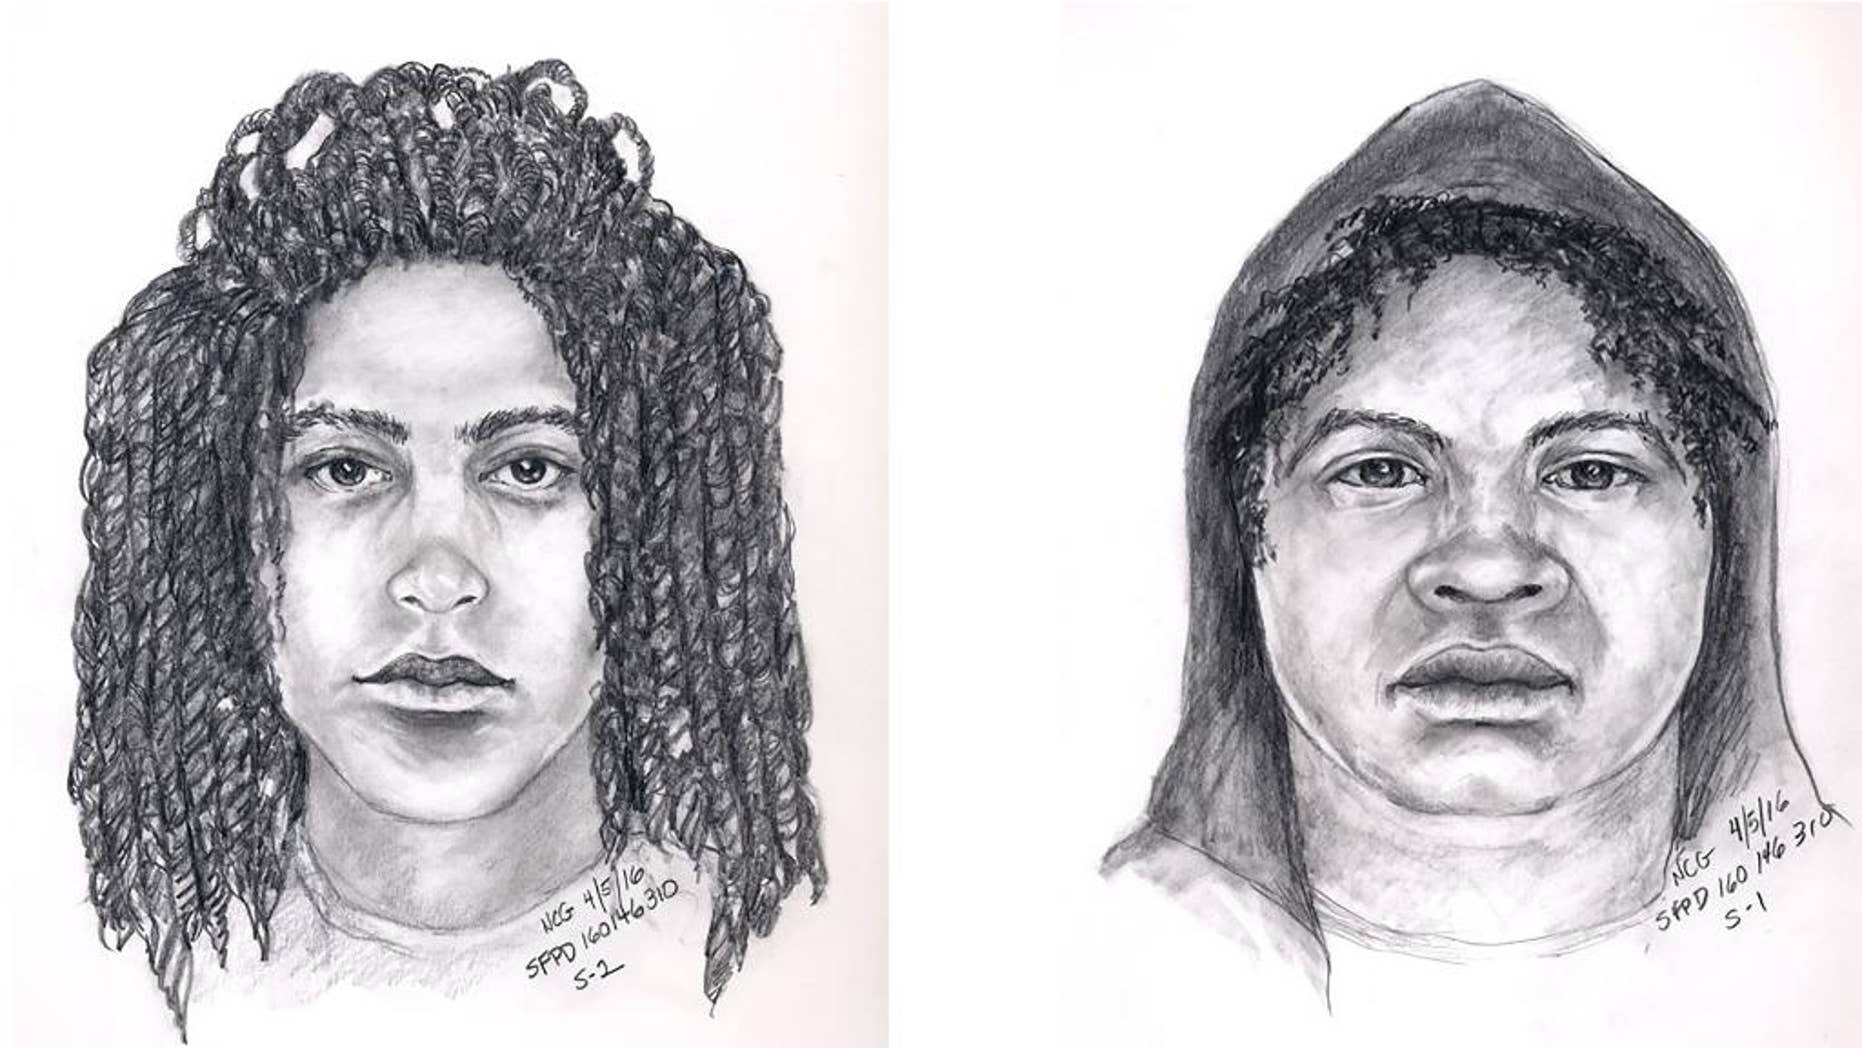 These April 5, 2016, police sketches provided by San Francisco Police Department shows two robbery suspects involved in a fatal attack in Feb. 18, 2016, in San Francisco. Police released the sketches Monday, April 11, of a couple they say attacked British tourist 48-year-old Paul Tam, of Manchester, near San Francisco's Cathedral. Police have yet to make an arrest in the attack, which is now being investigated as a homicide. (San Francisco Police Department via AP)